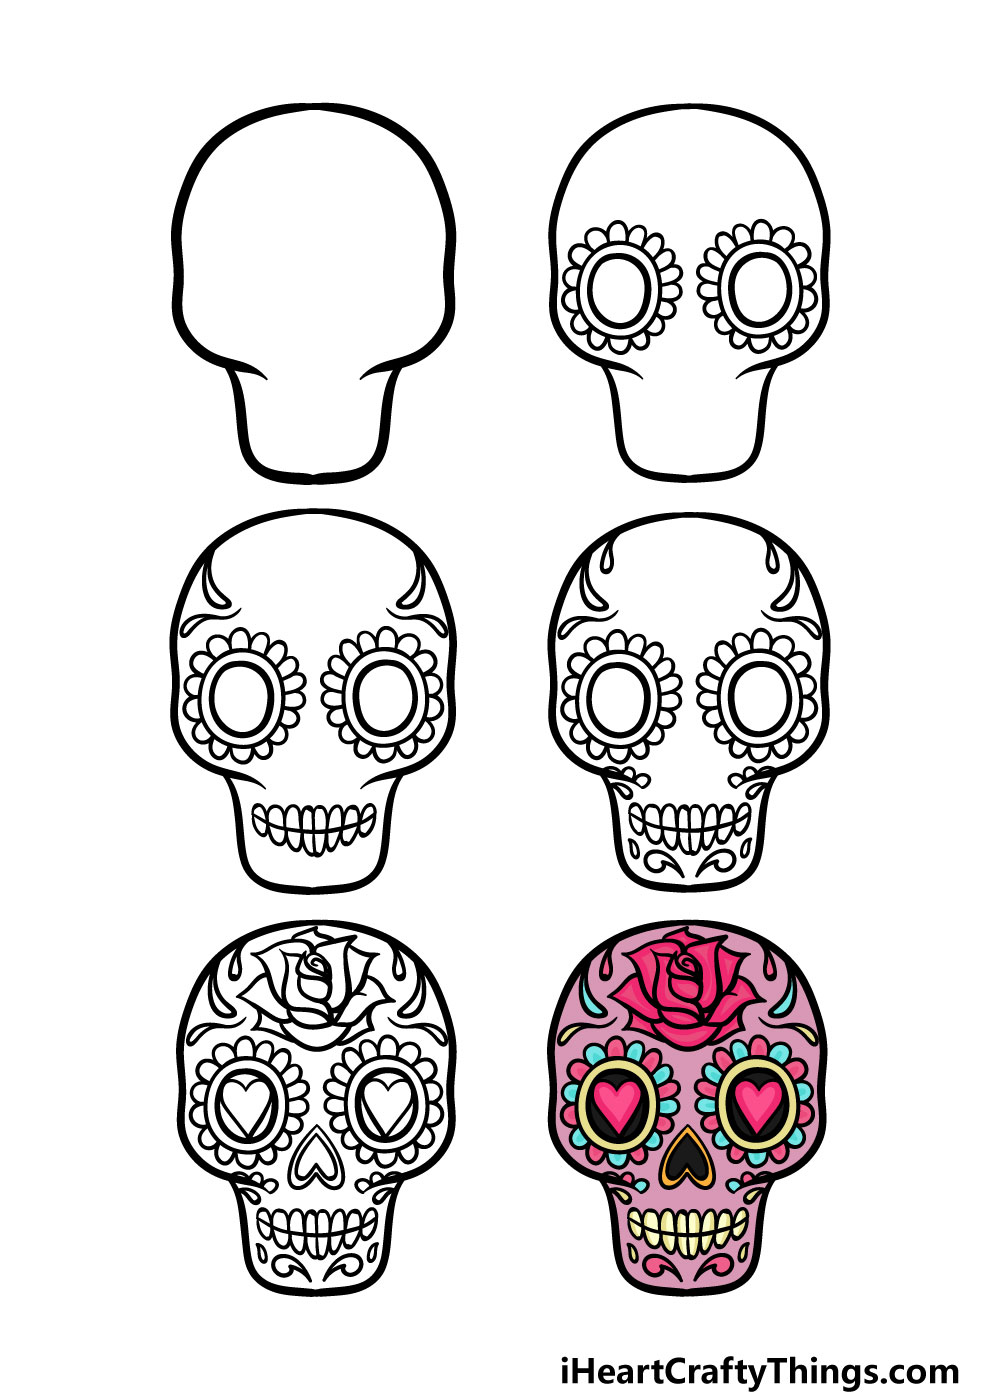 how to draw a sugar skull in 6 steps